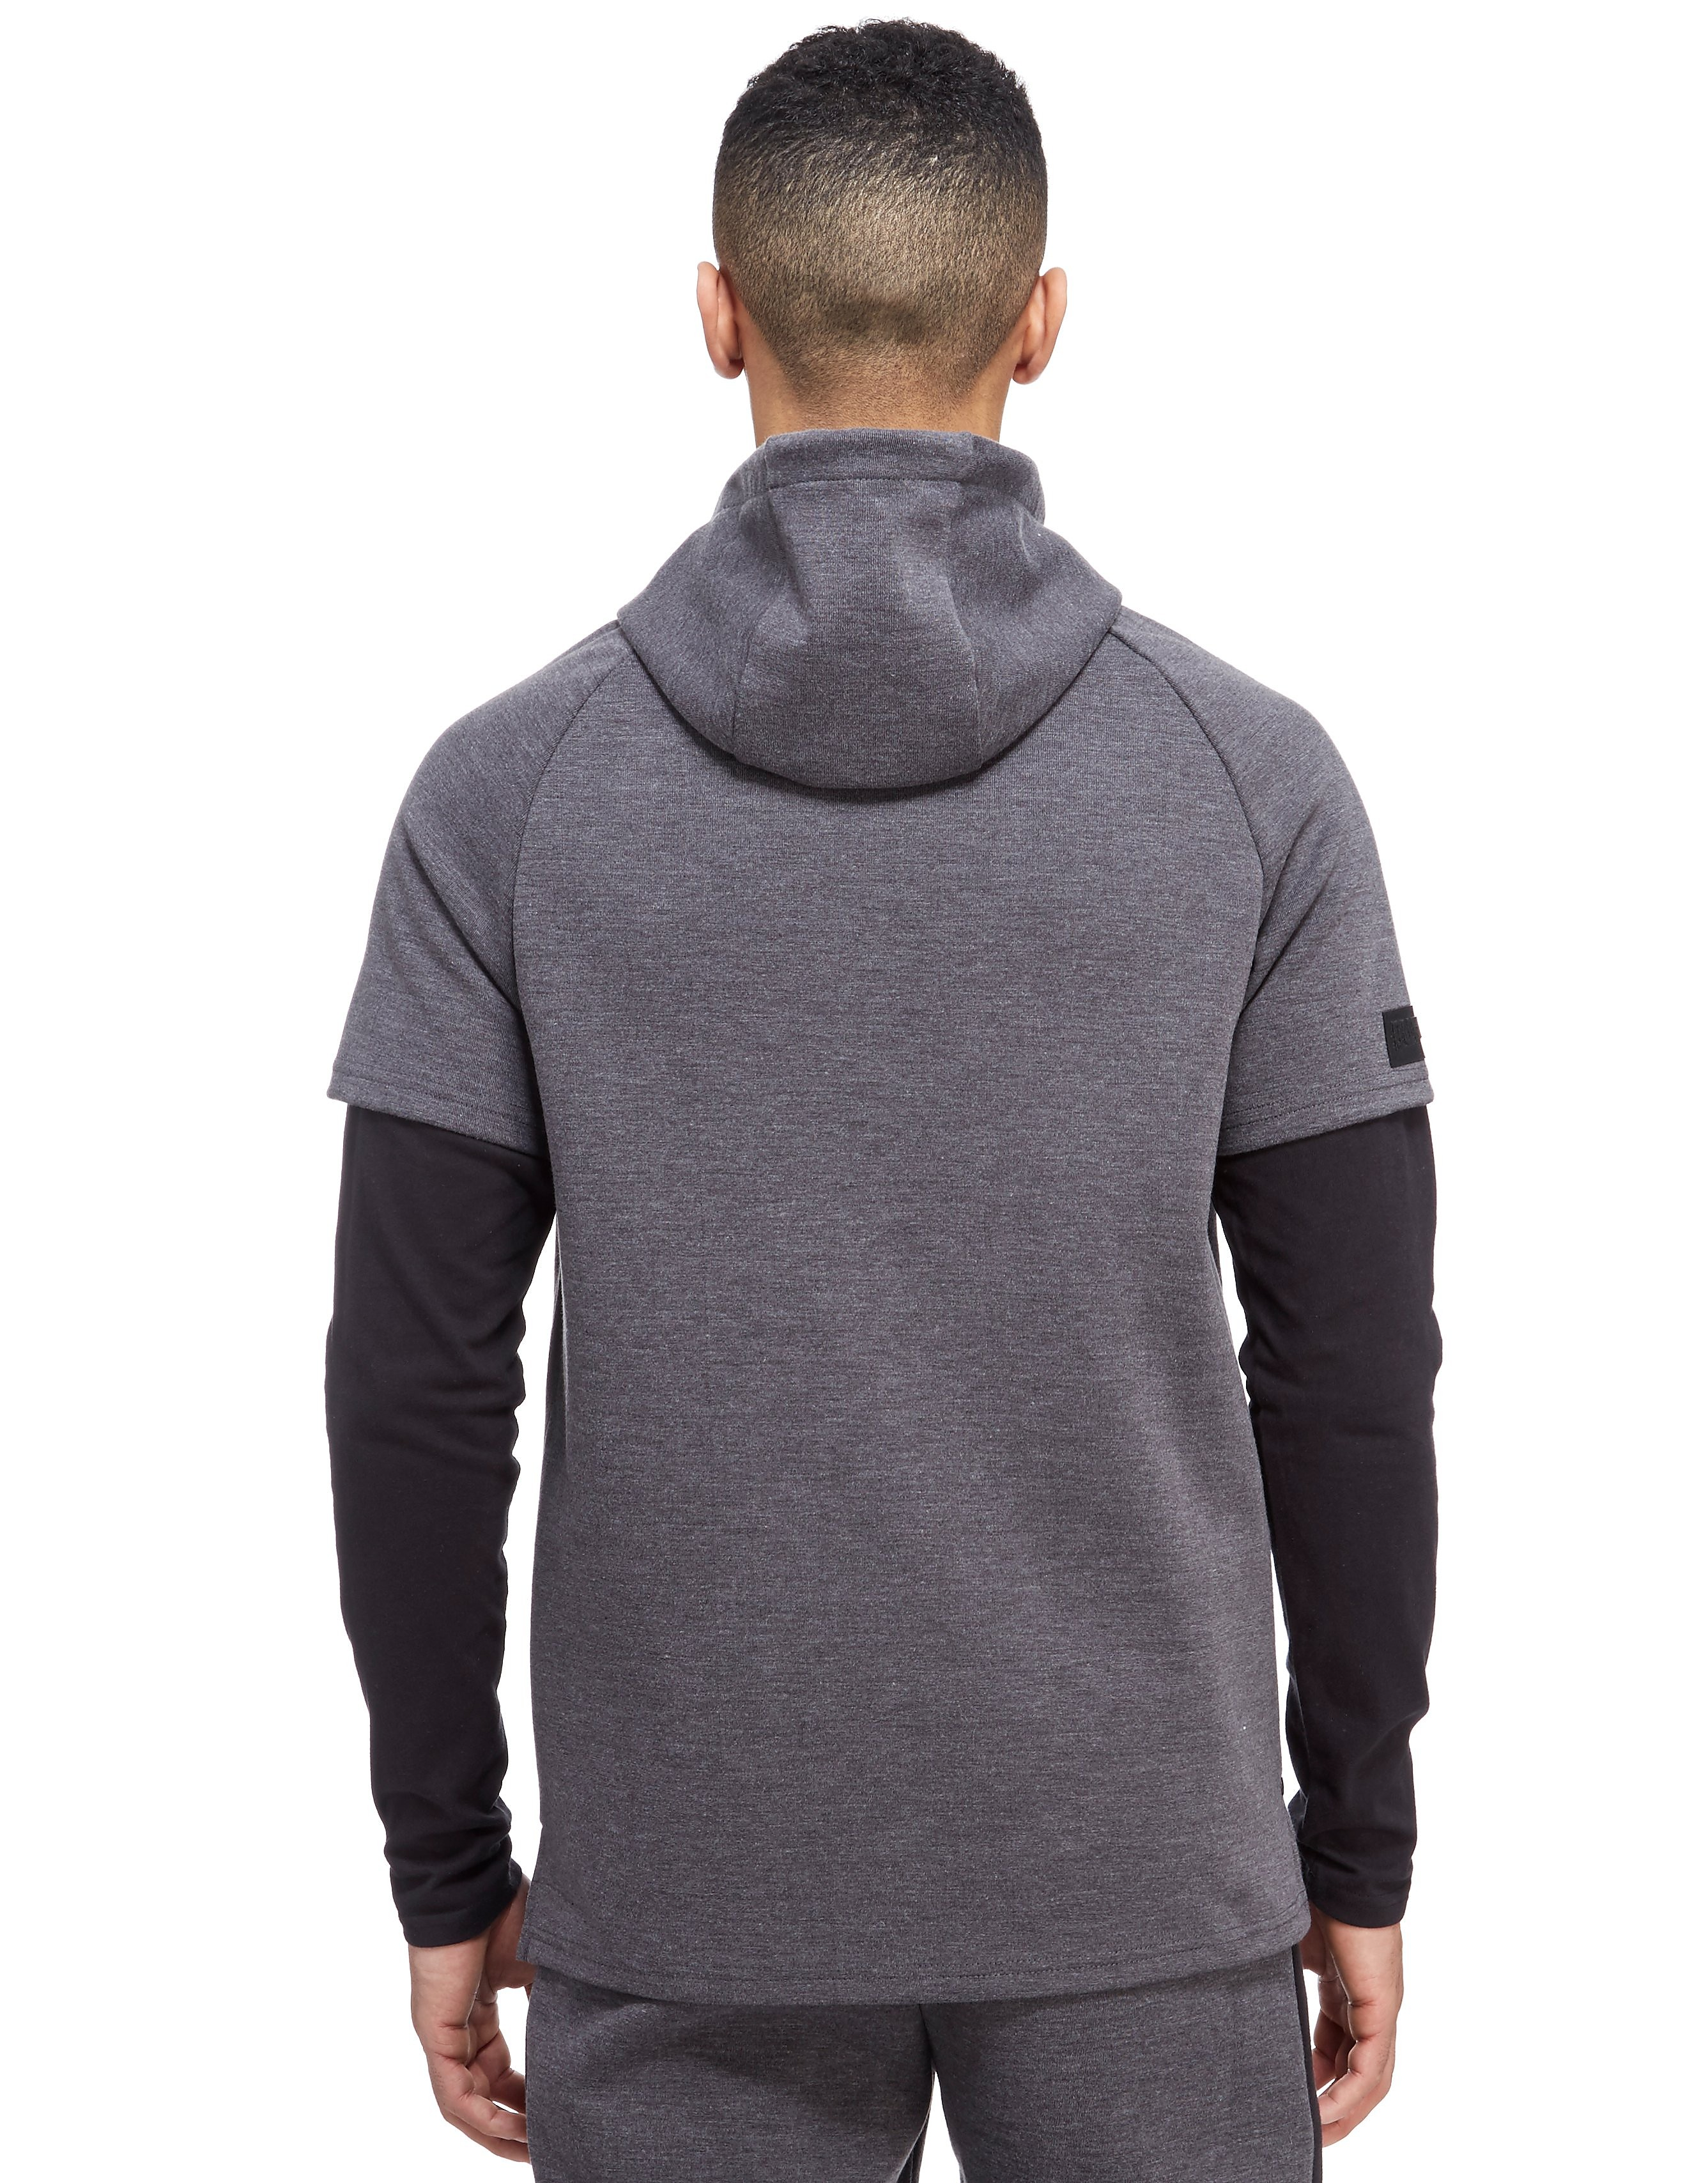 Duffer of St George System Hoody